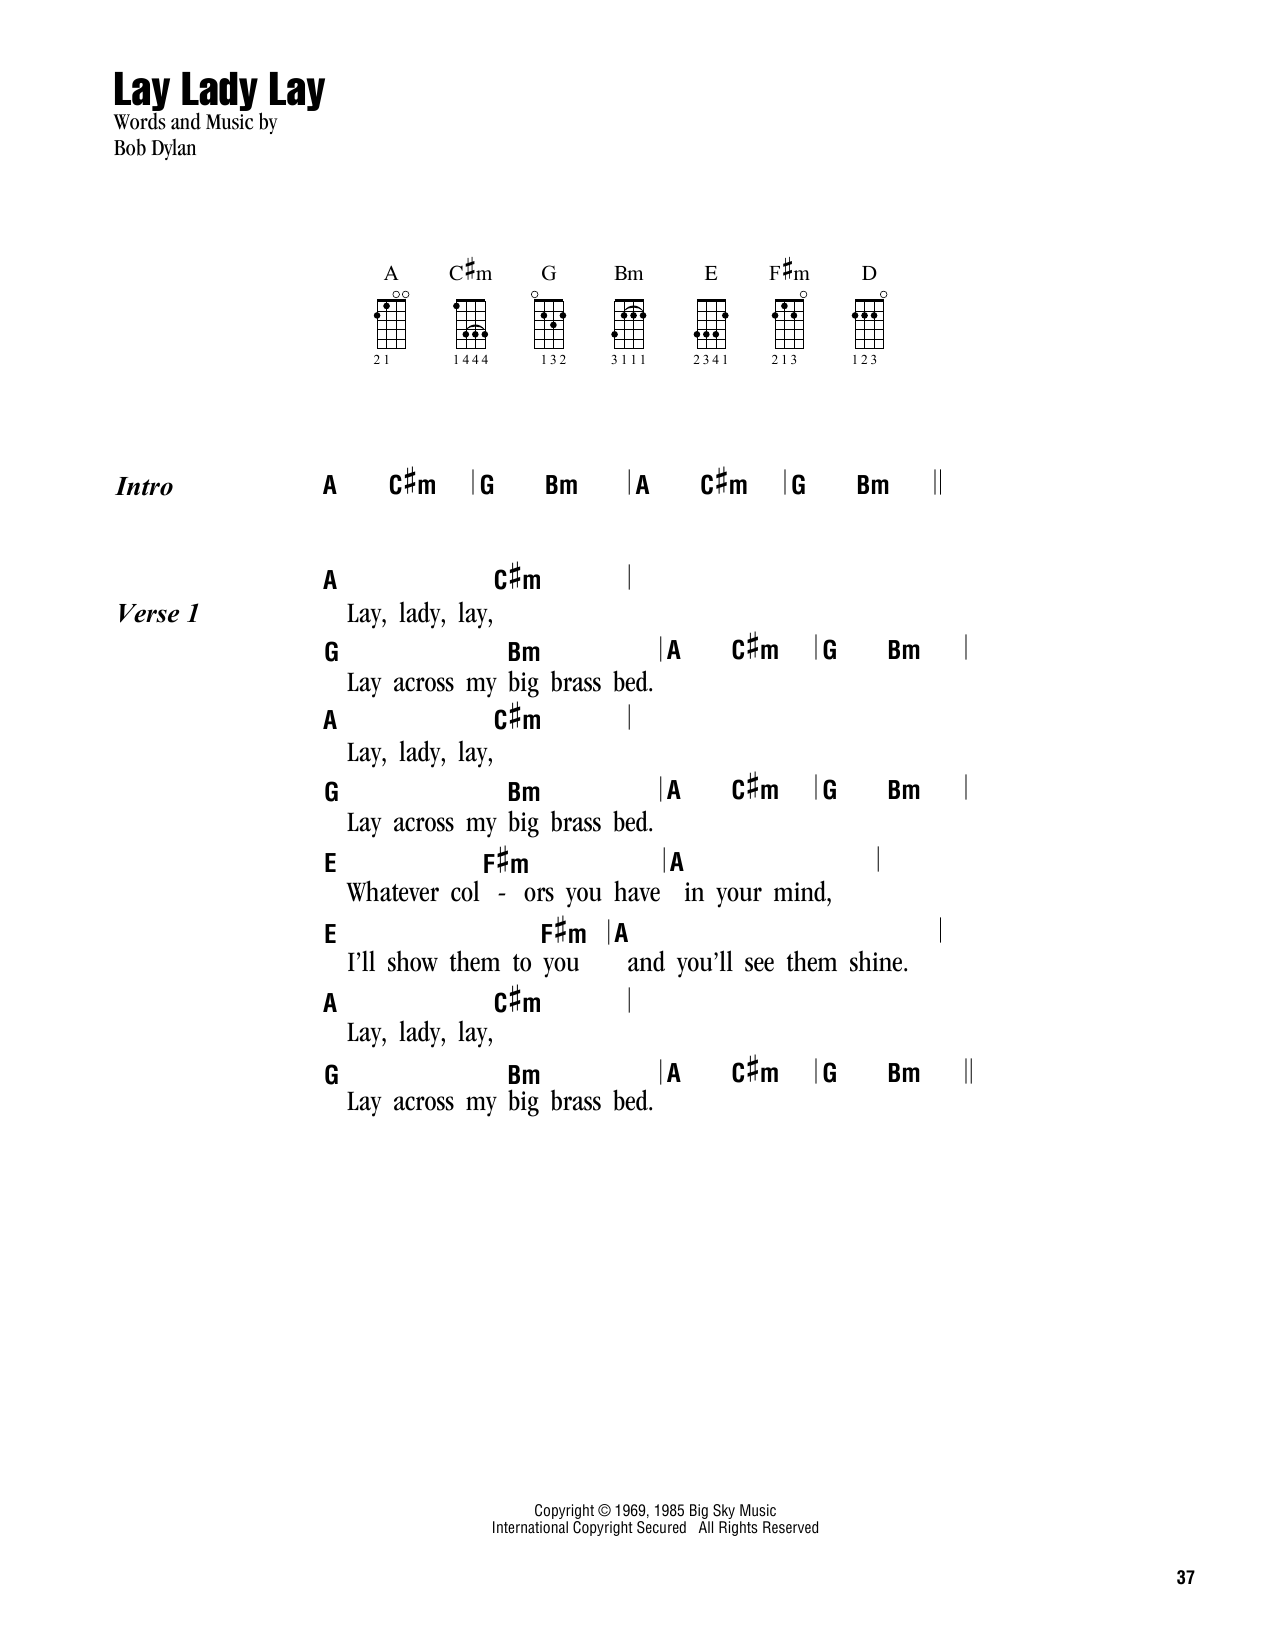 Tablature guitare Lay, Lady, Lay de Bob Dylan - Ukulele (strumming patterns)